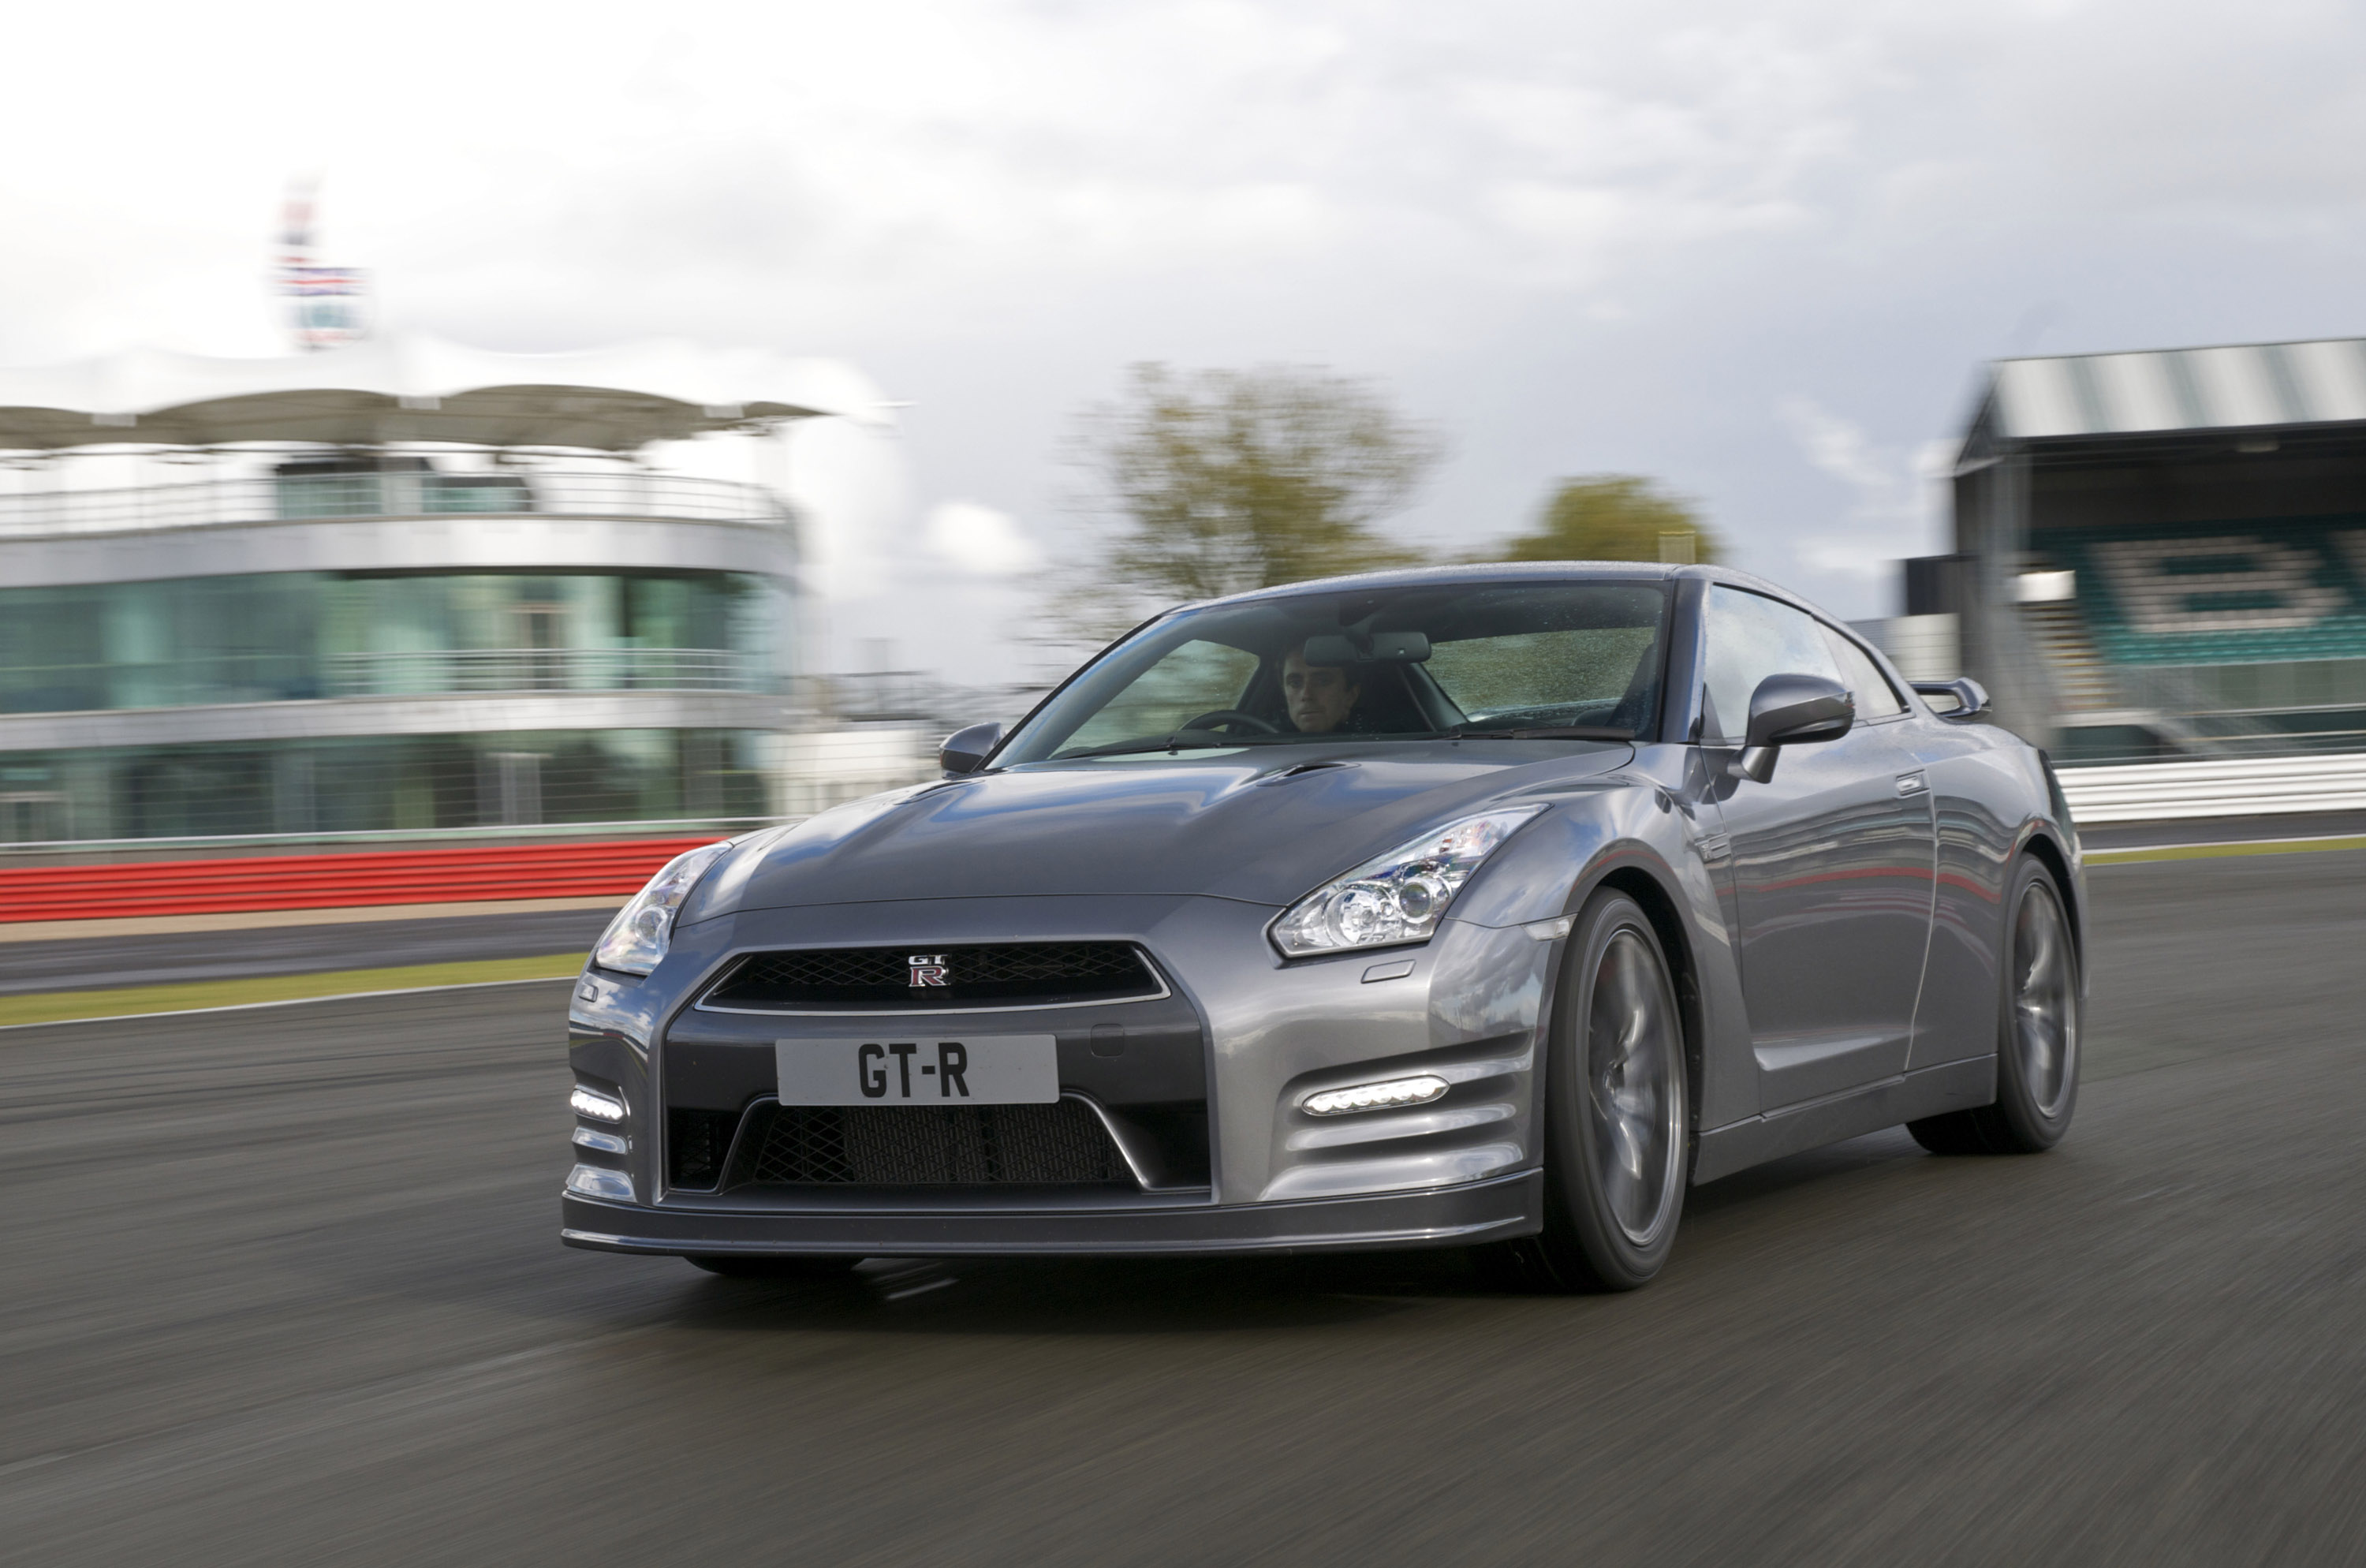 2013 Nissan Gt R R35 10 87 Seconds At 1 4 Mile With 201 Km H